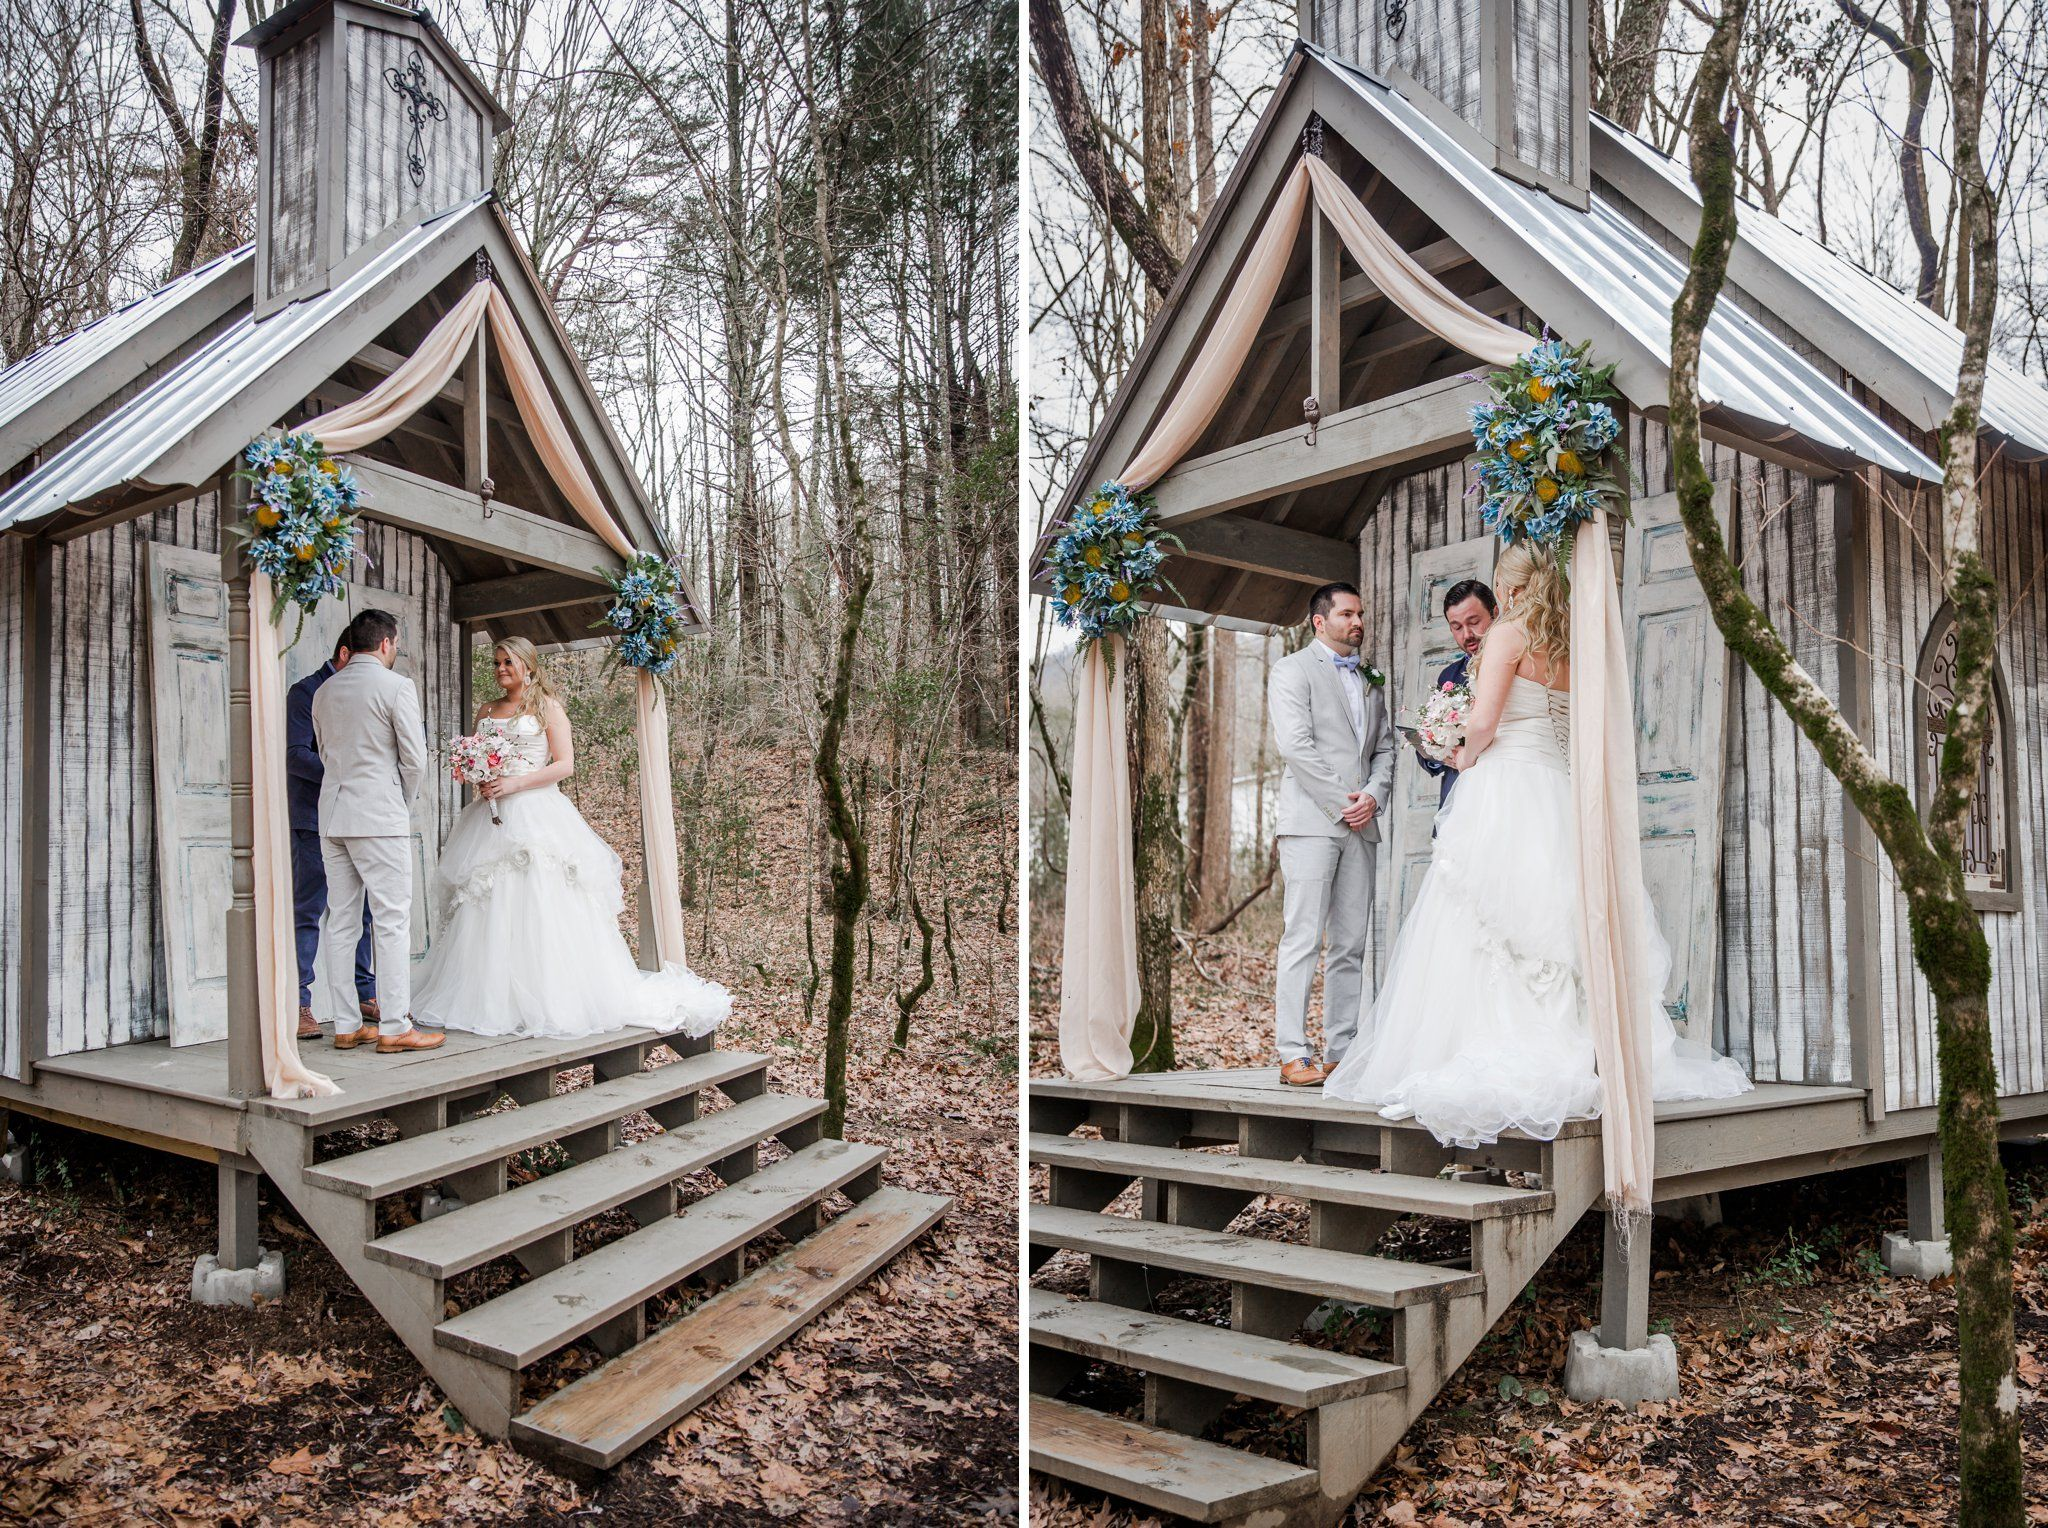 Intimate Smoky Mountain Wedding At Gatlinburg Wedding Chapel In 2020 Gatlinburg Weddings Smoky Mountain Wedding Chapel Wedding